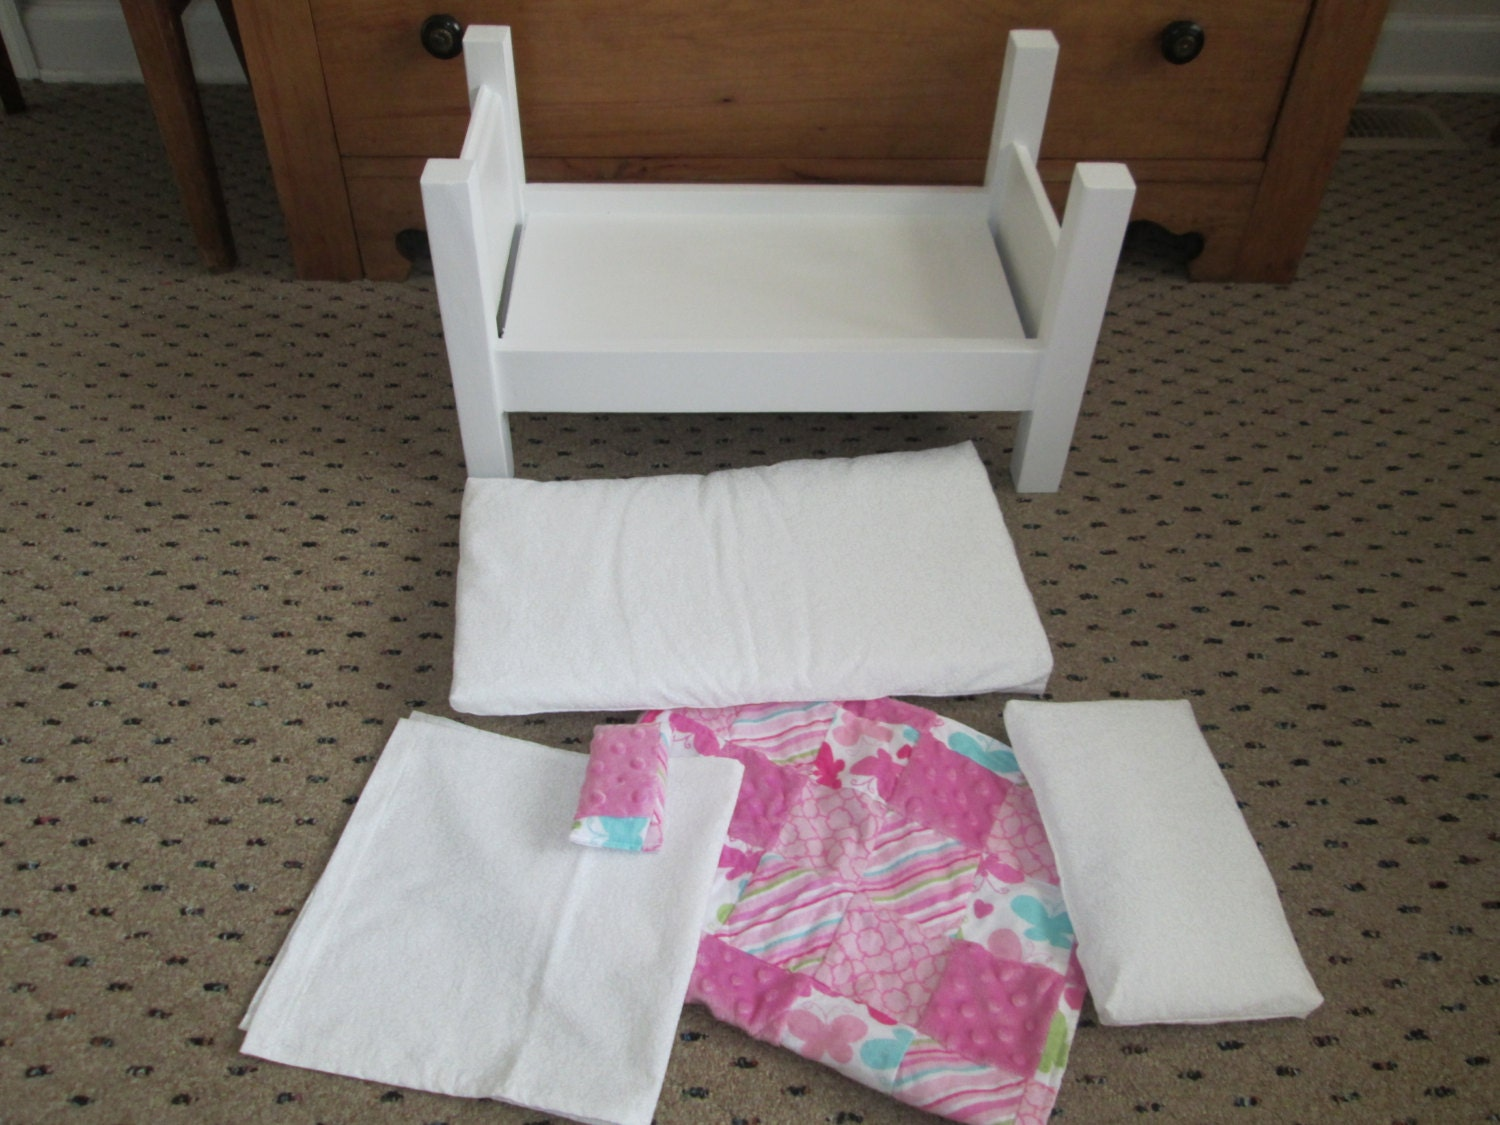 Marvelous photograph of 18 inch Wooden Doll Bed with comforter set by SandysHomemadeCrafts with #884360 color and 1500x1125 pixels